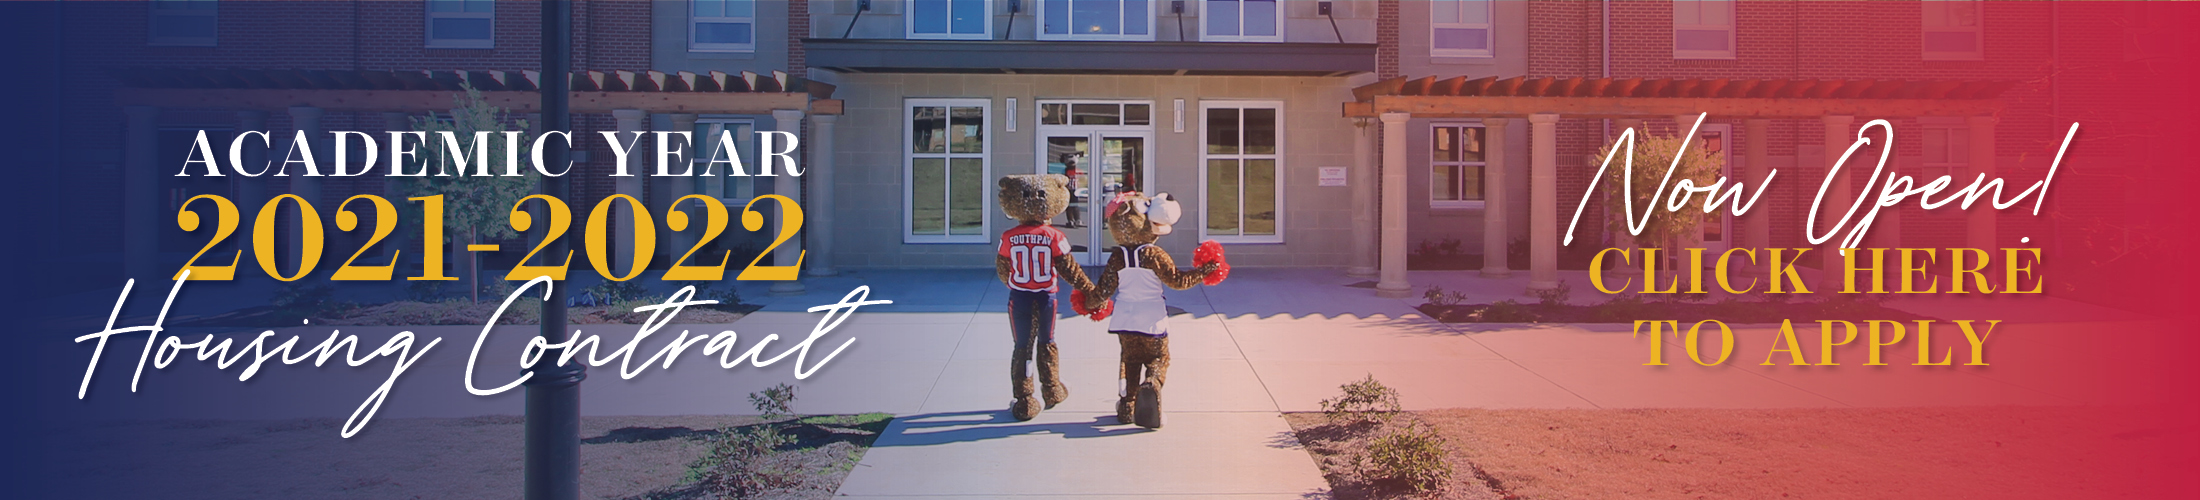 Image of Southpaw and Ms. Pawla walking into dorms with text Academic Year 2021-2022 Housing Contract Now Open Click Here to Apply